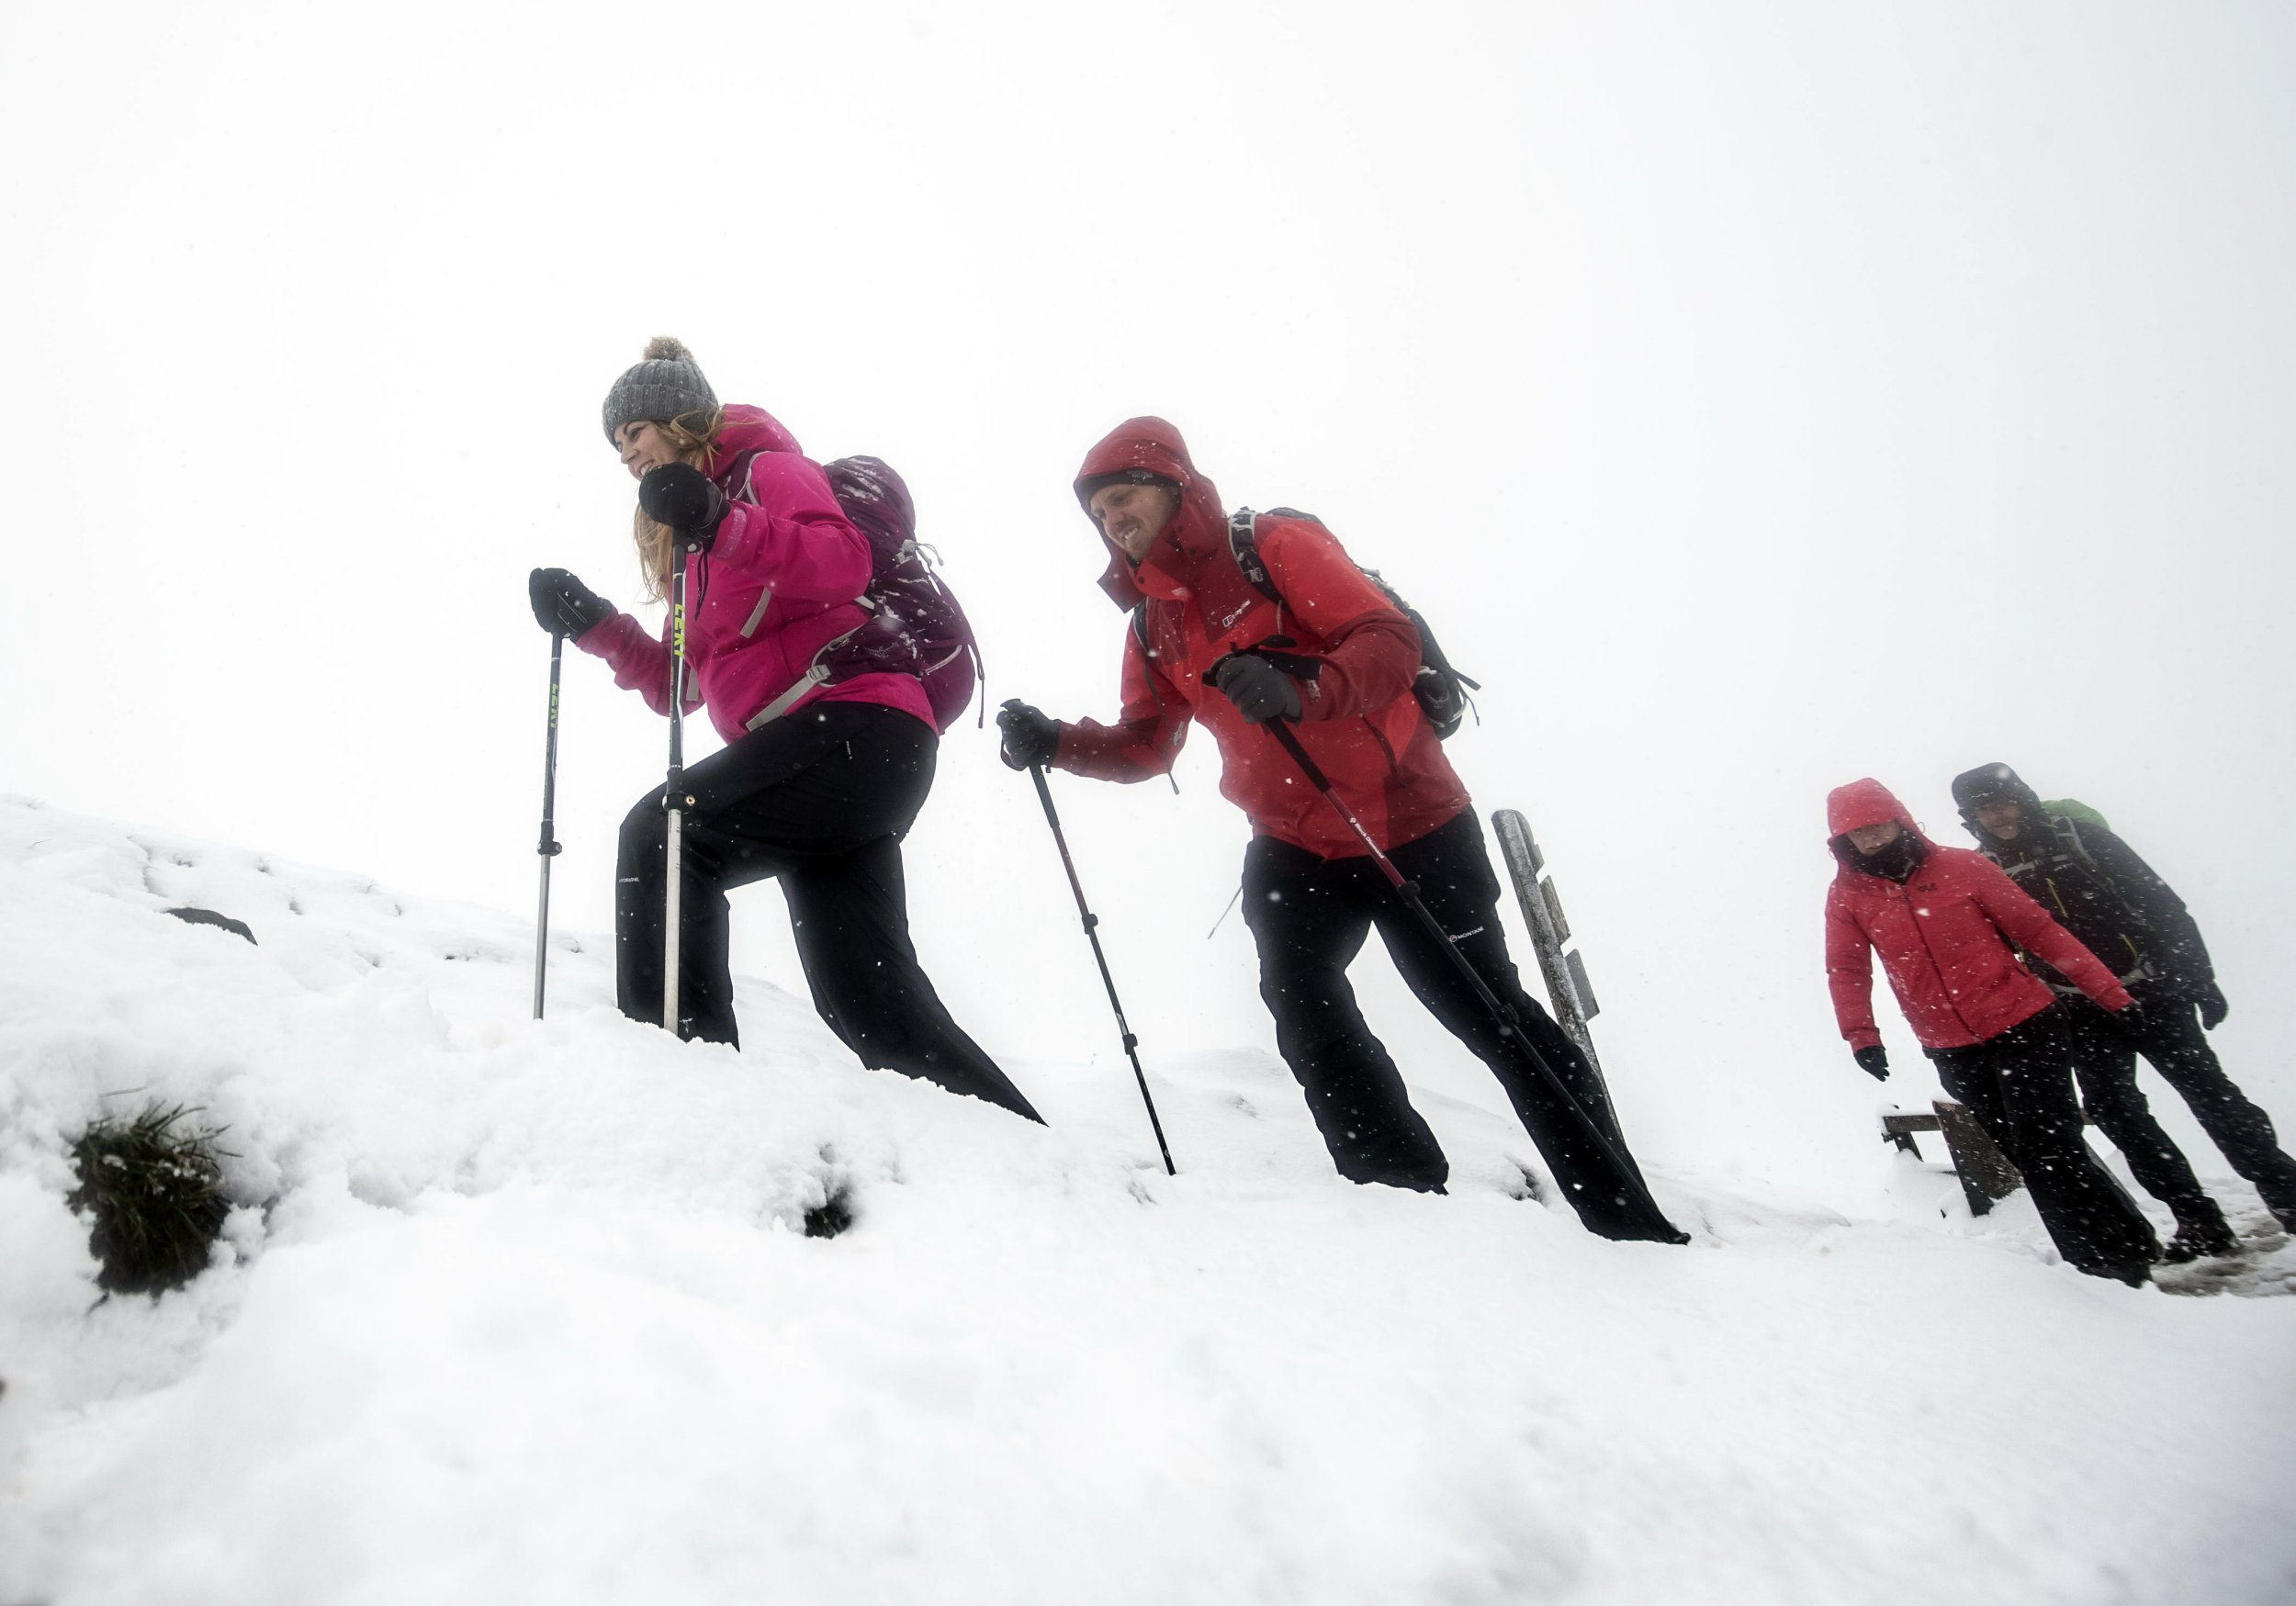 Hikers in whiteout conditions near Mam Tor in the Peak District, Derbyshire, as weather warnings are in place across the UK. PRESS ASSOCIATION Photo. Picture date: Sunday March 10, 2019. Weather warnings for snow and ice are in place across western Scotland and northern Ireland until 11am, while the wintry weather is also set to cause disruption across parts of the Midlands. Photo credit should read: Danny Lawson/PA Wire